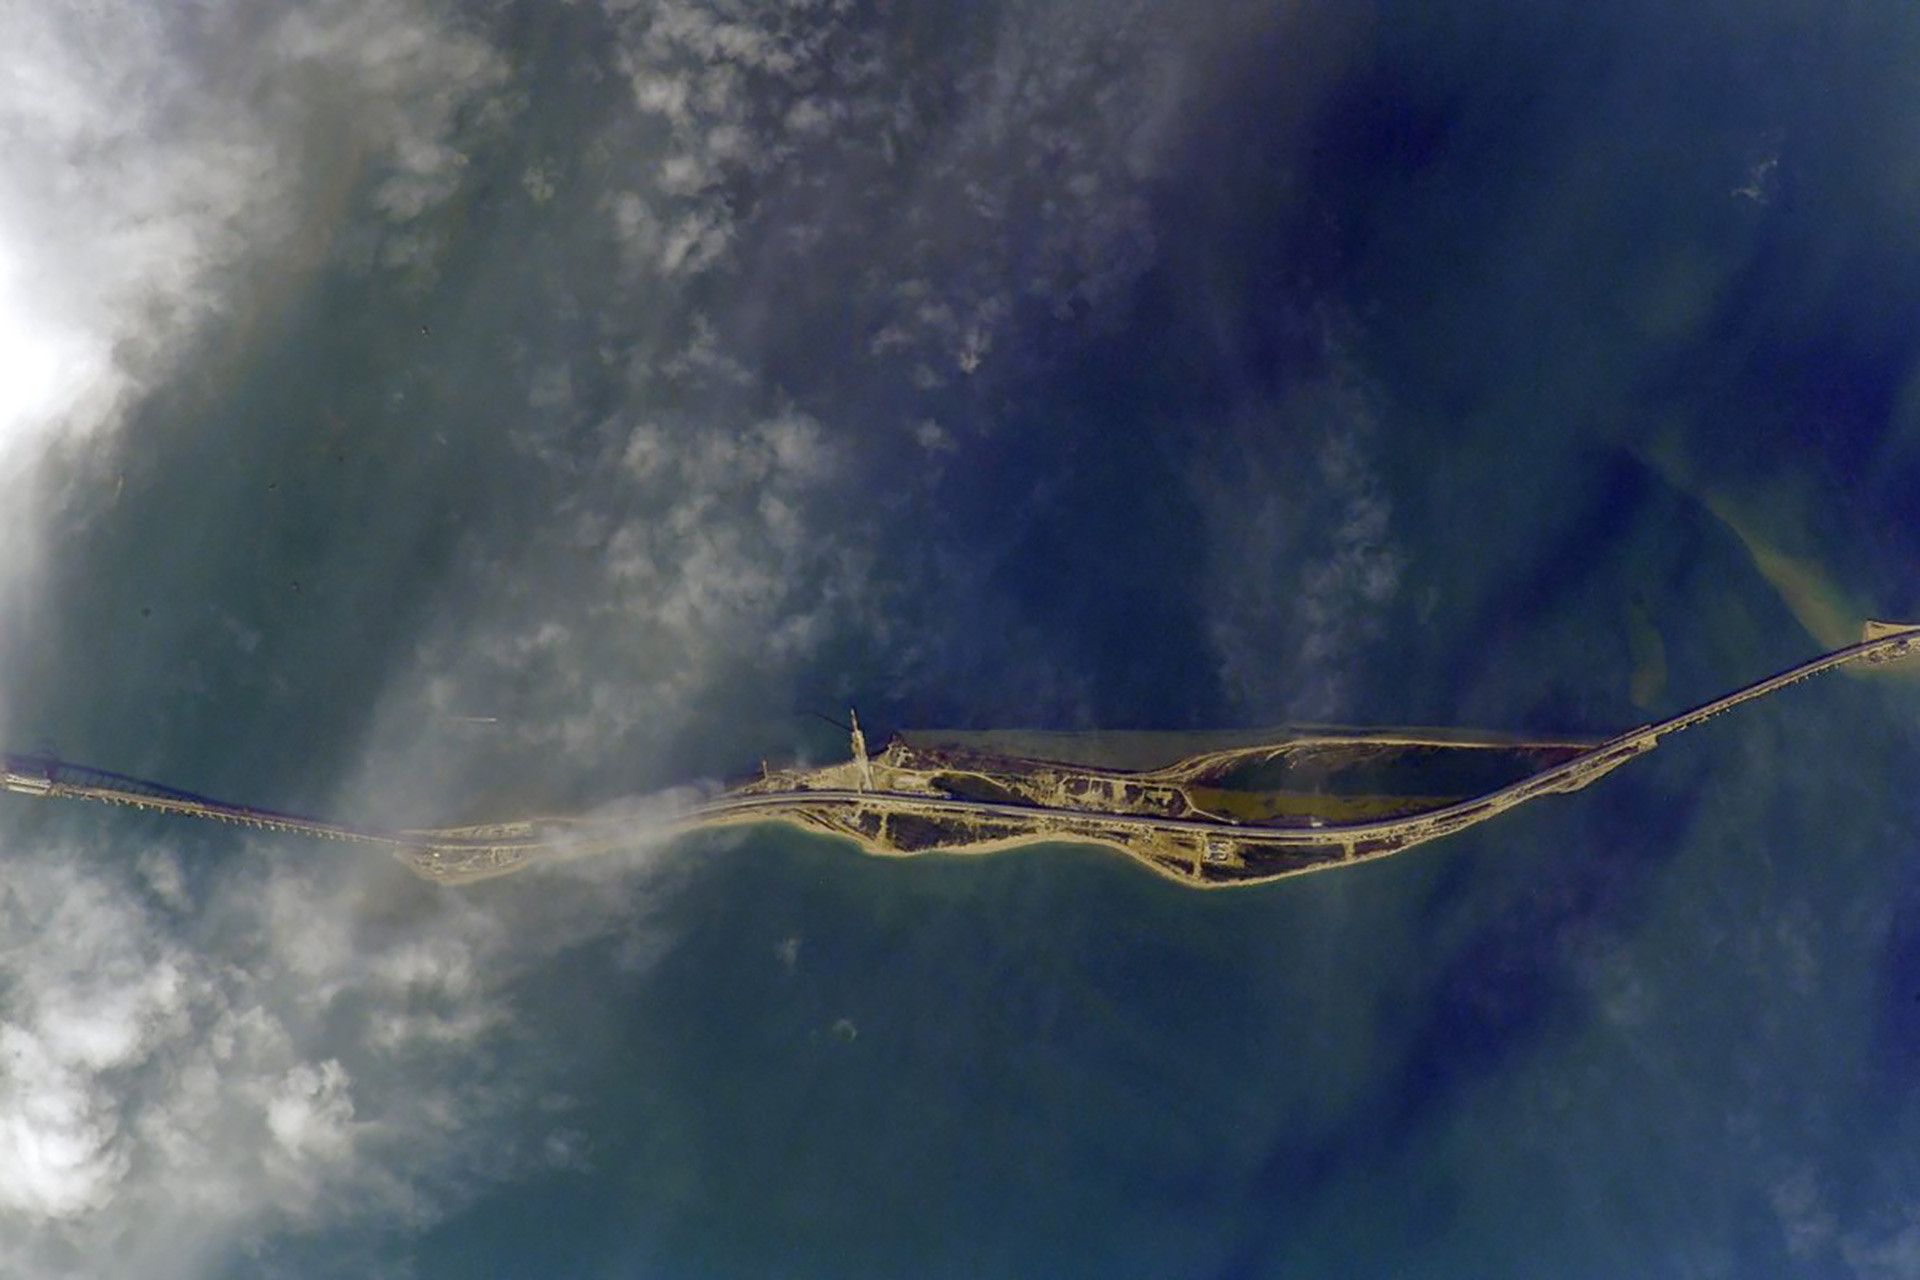 Crimea Bridge from space